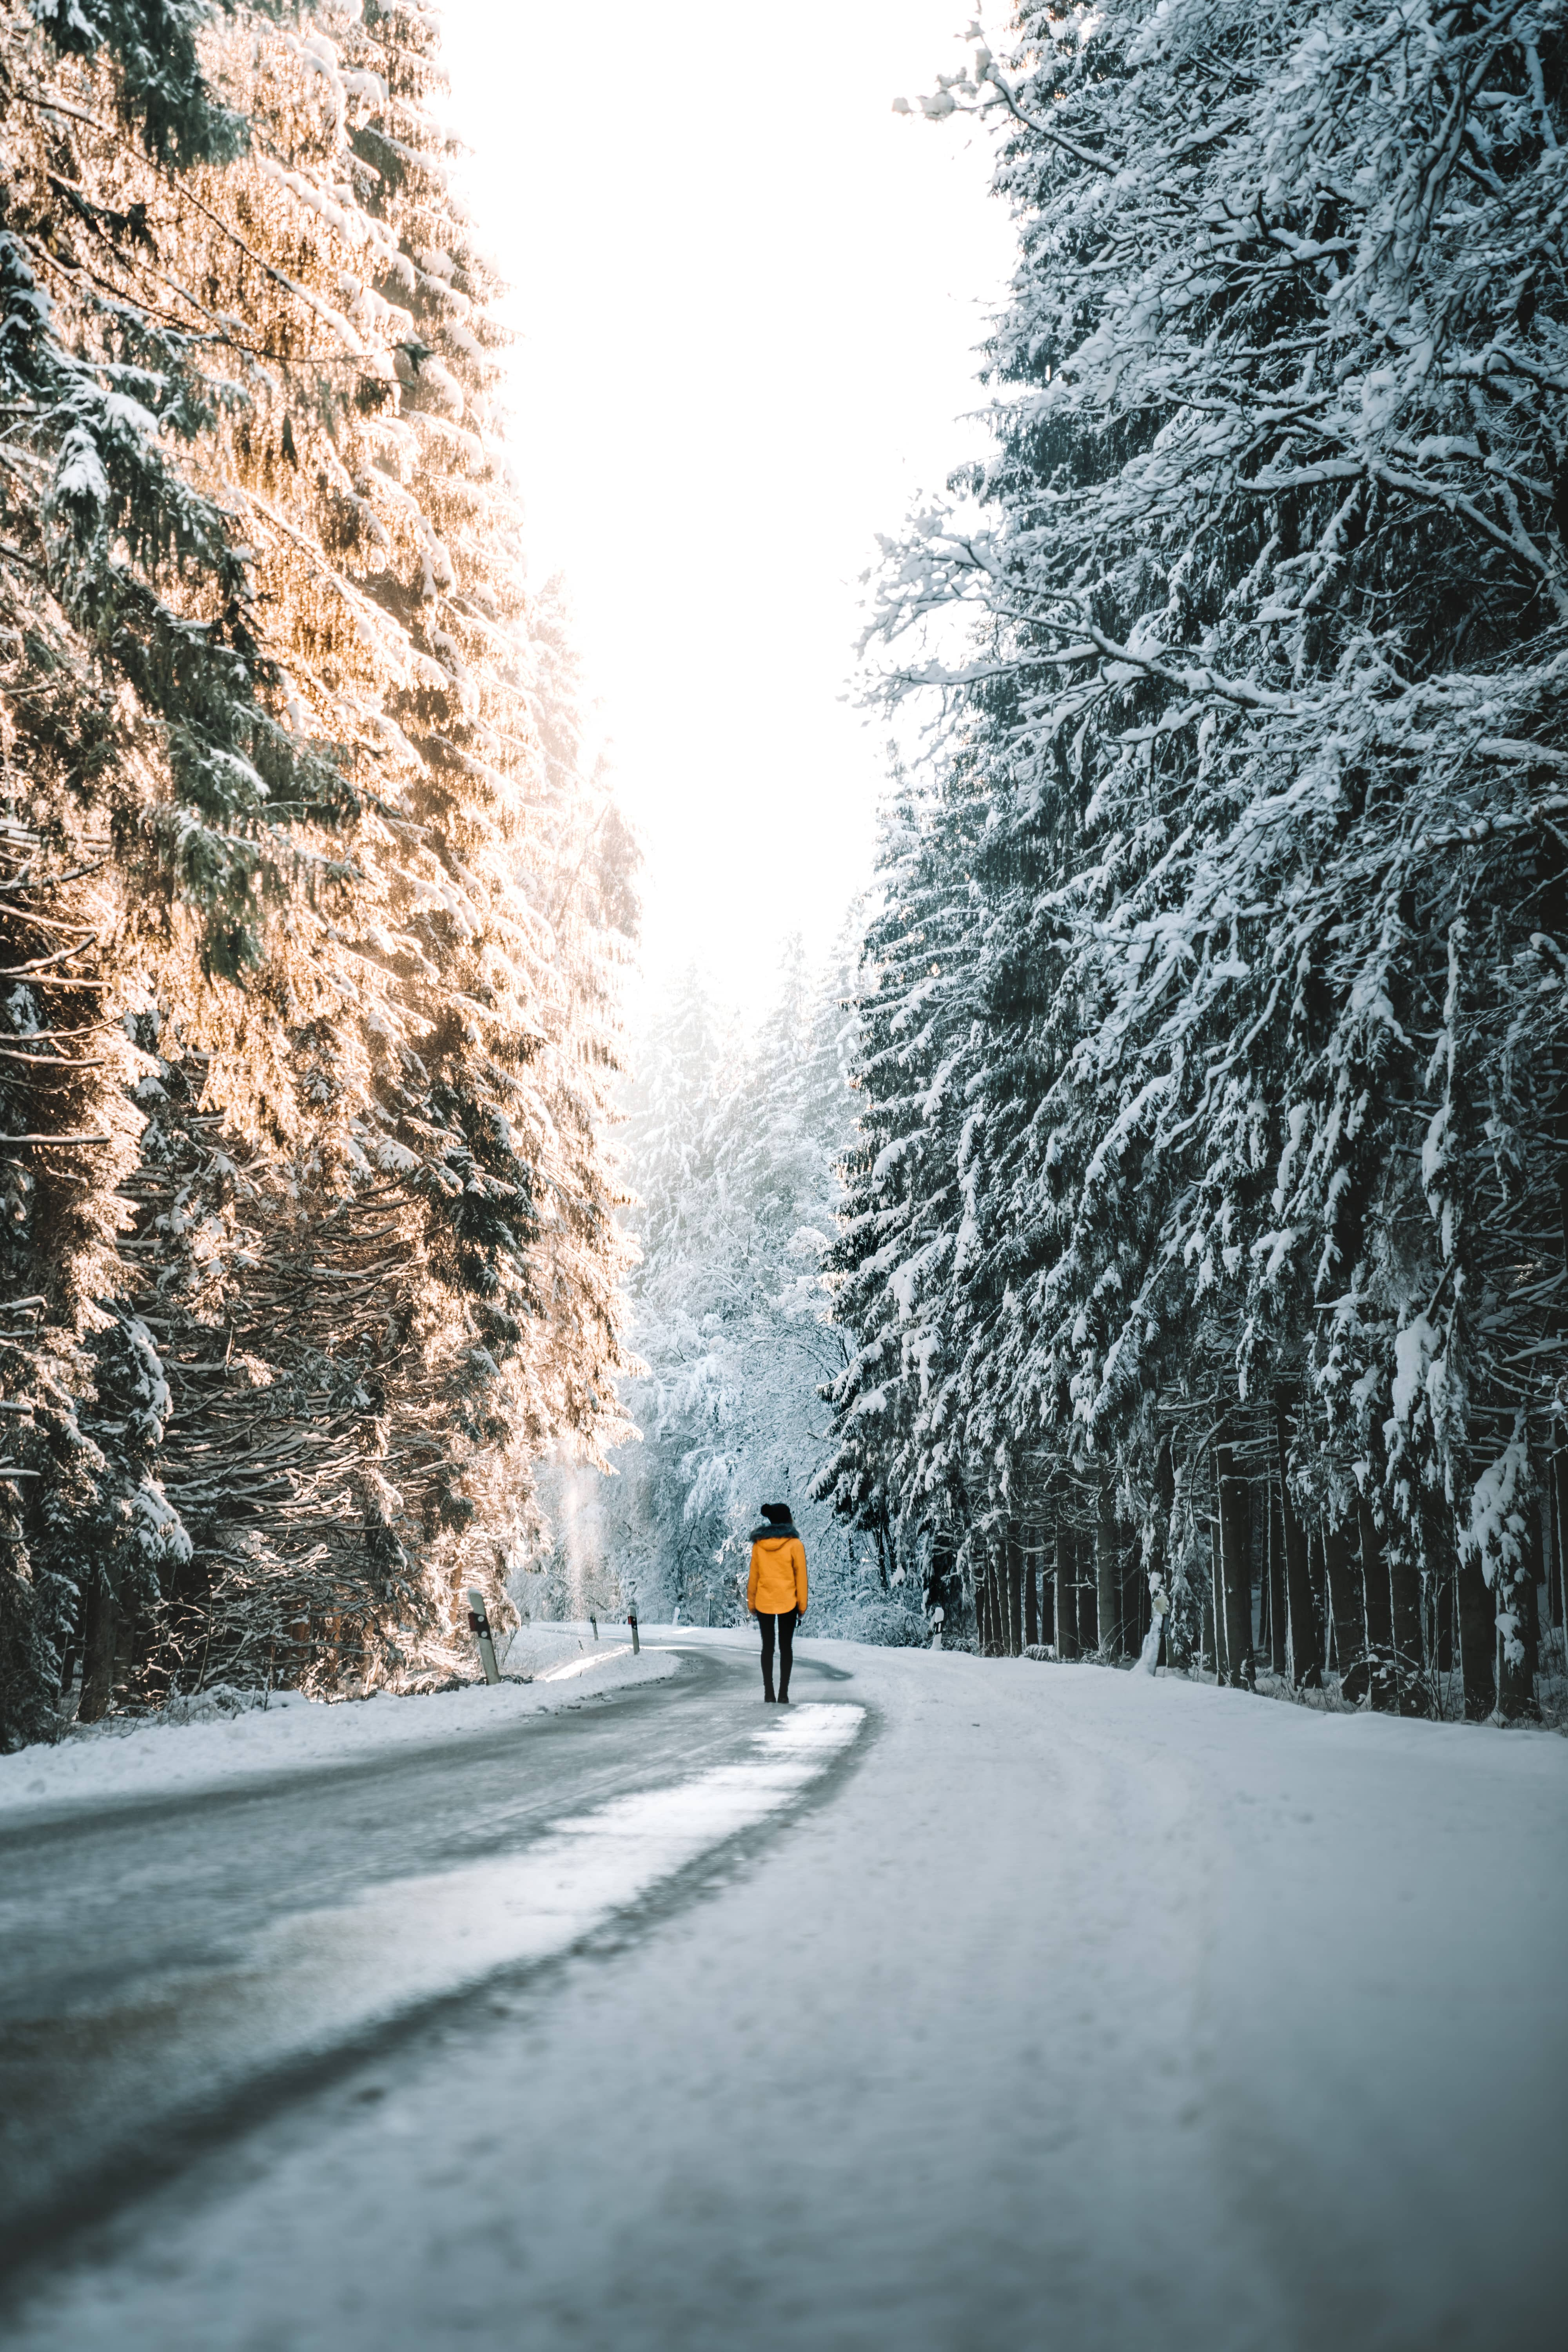 Person with yellow jacket standing in the distance on a road surrounded by big trees covered with snow